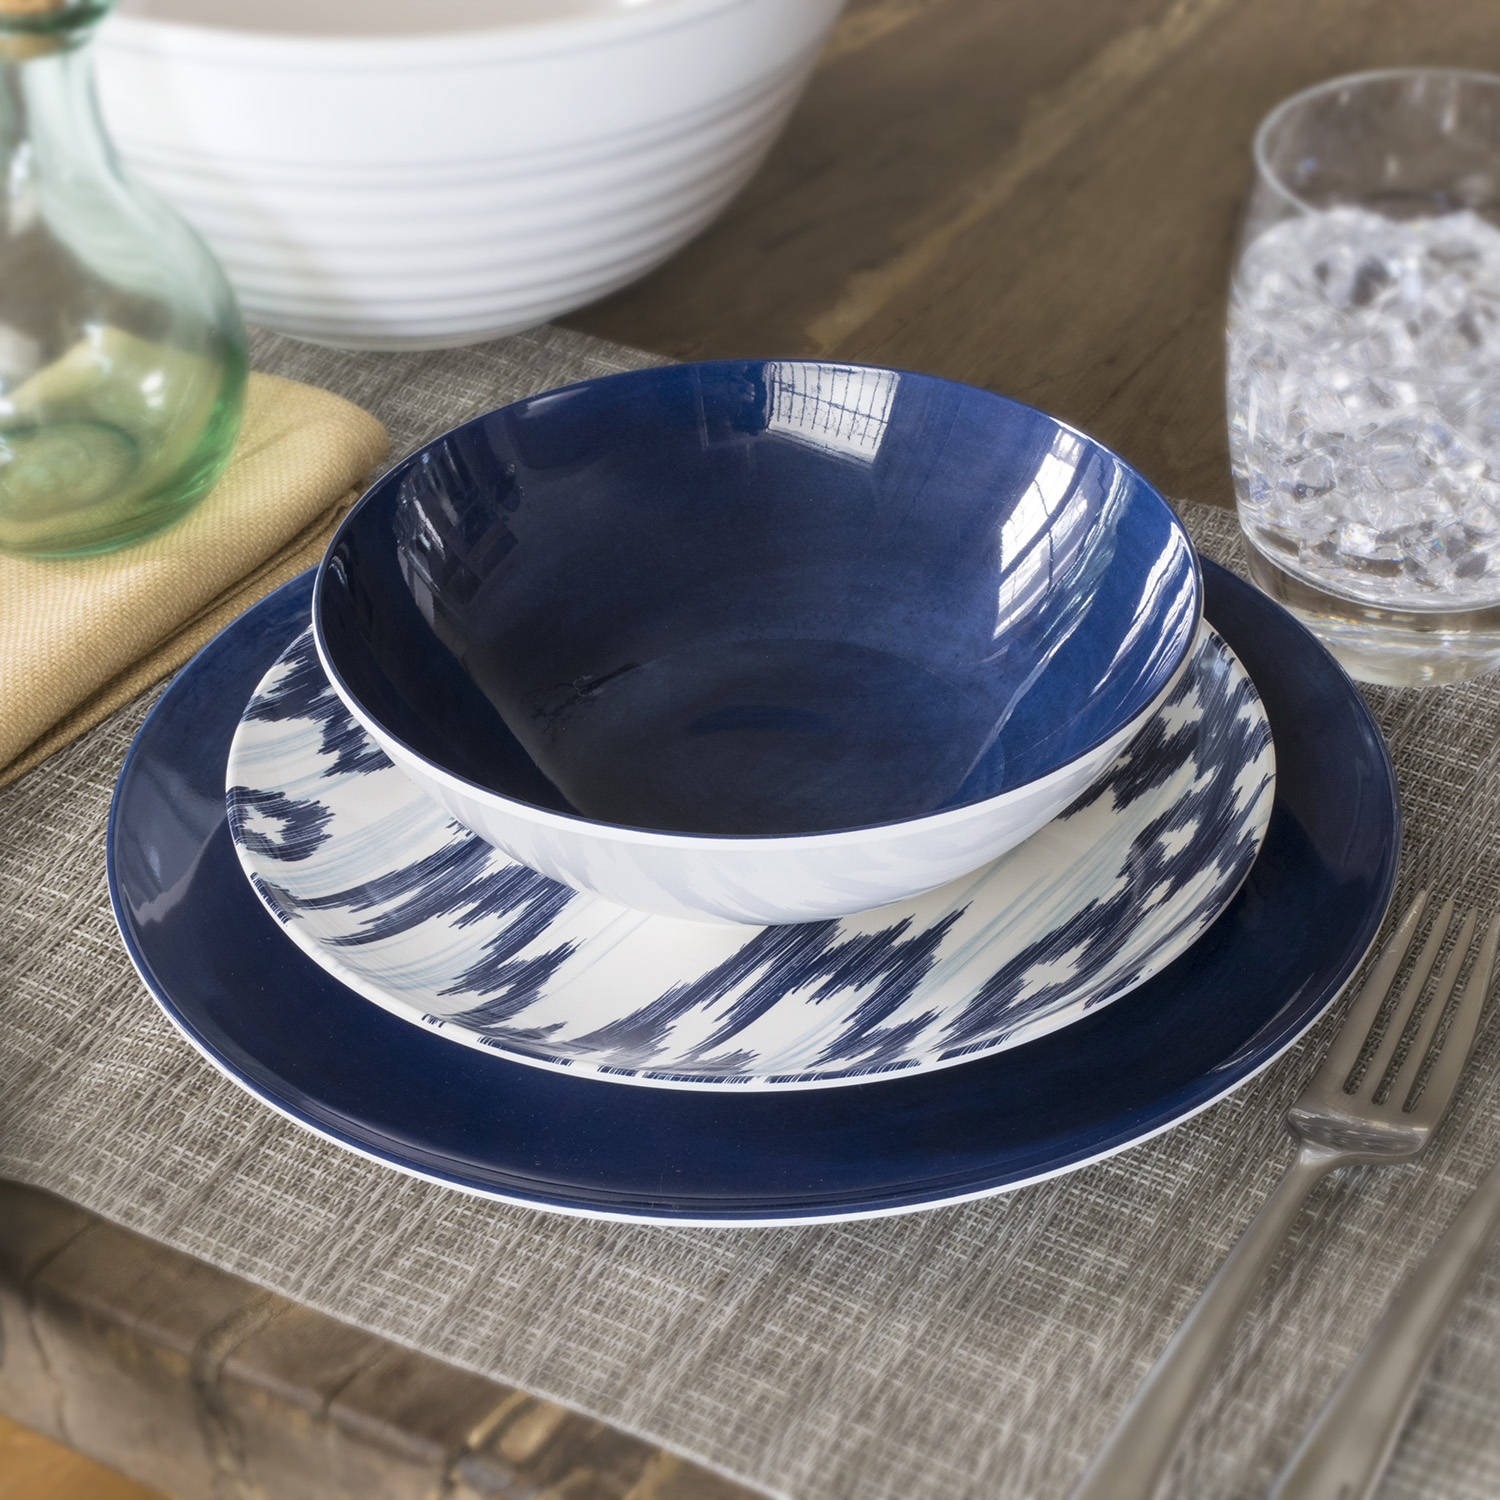 Better Homes and Gardens Navy Glaze Melamine Cereal Bowl, Set of 4